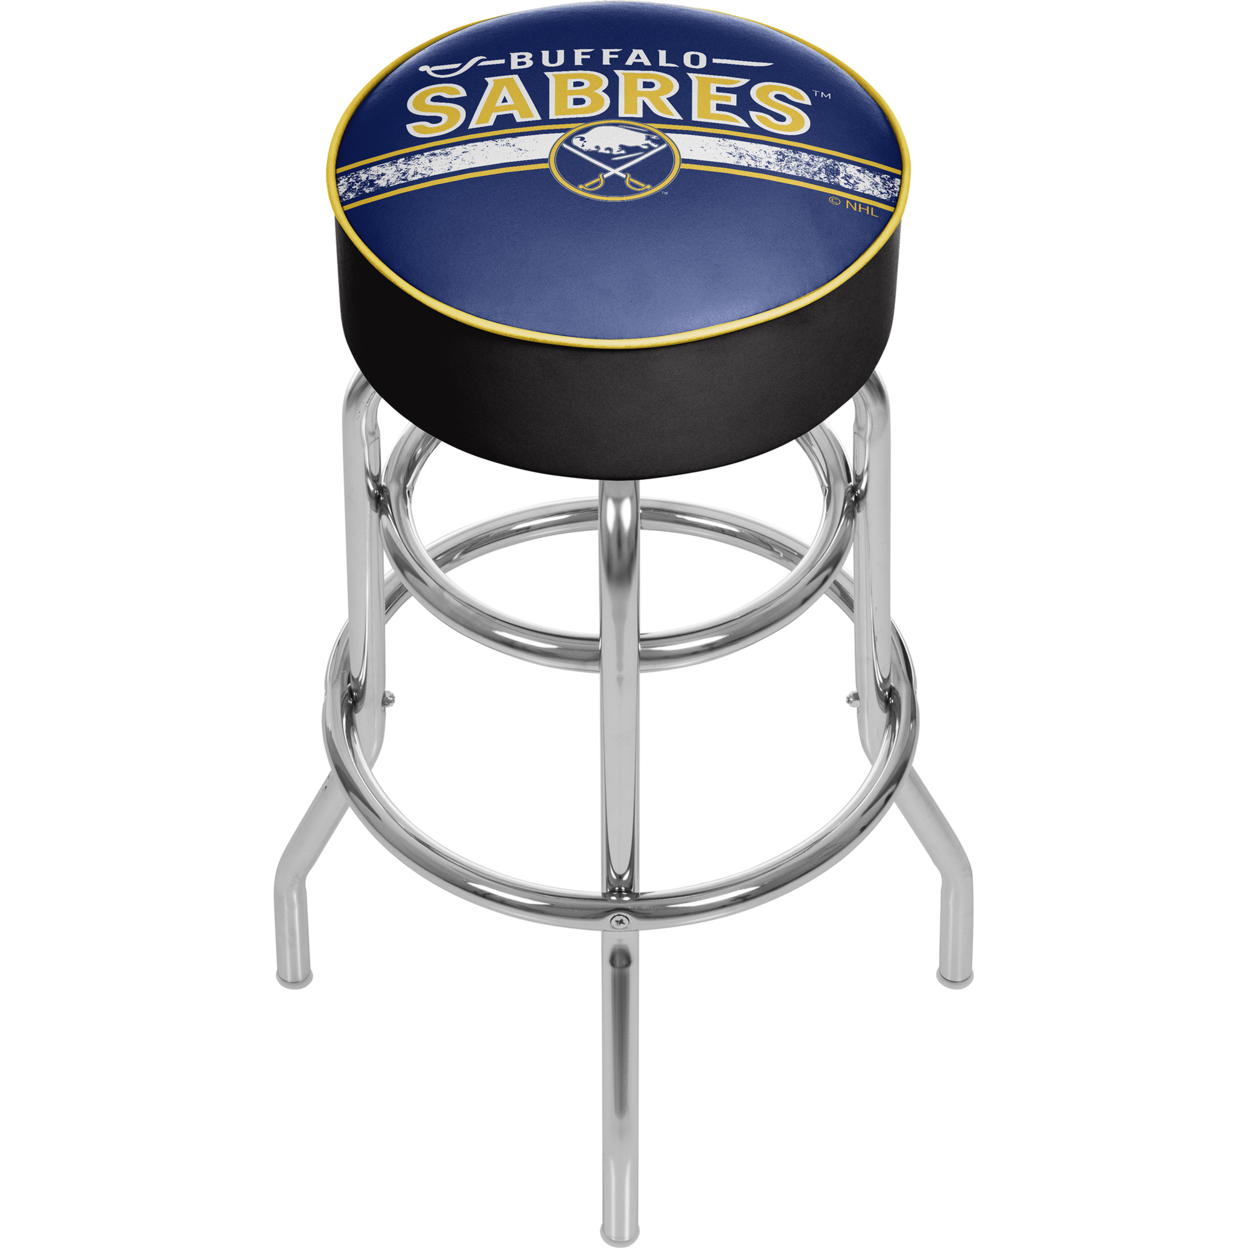 NHL Chrome Bar Stool with Swivel - Buffalo Sabres ...